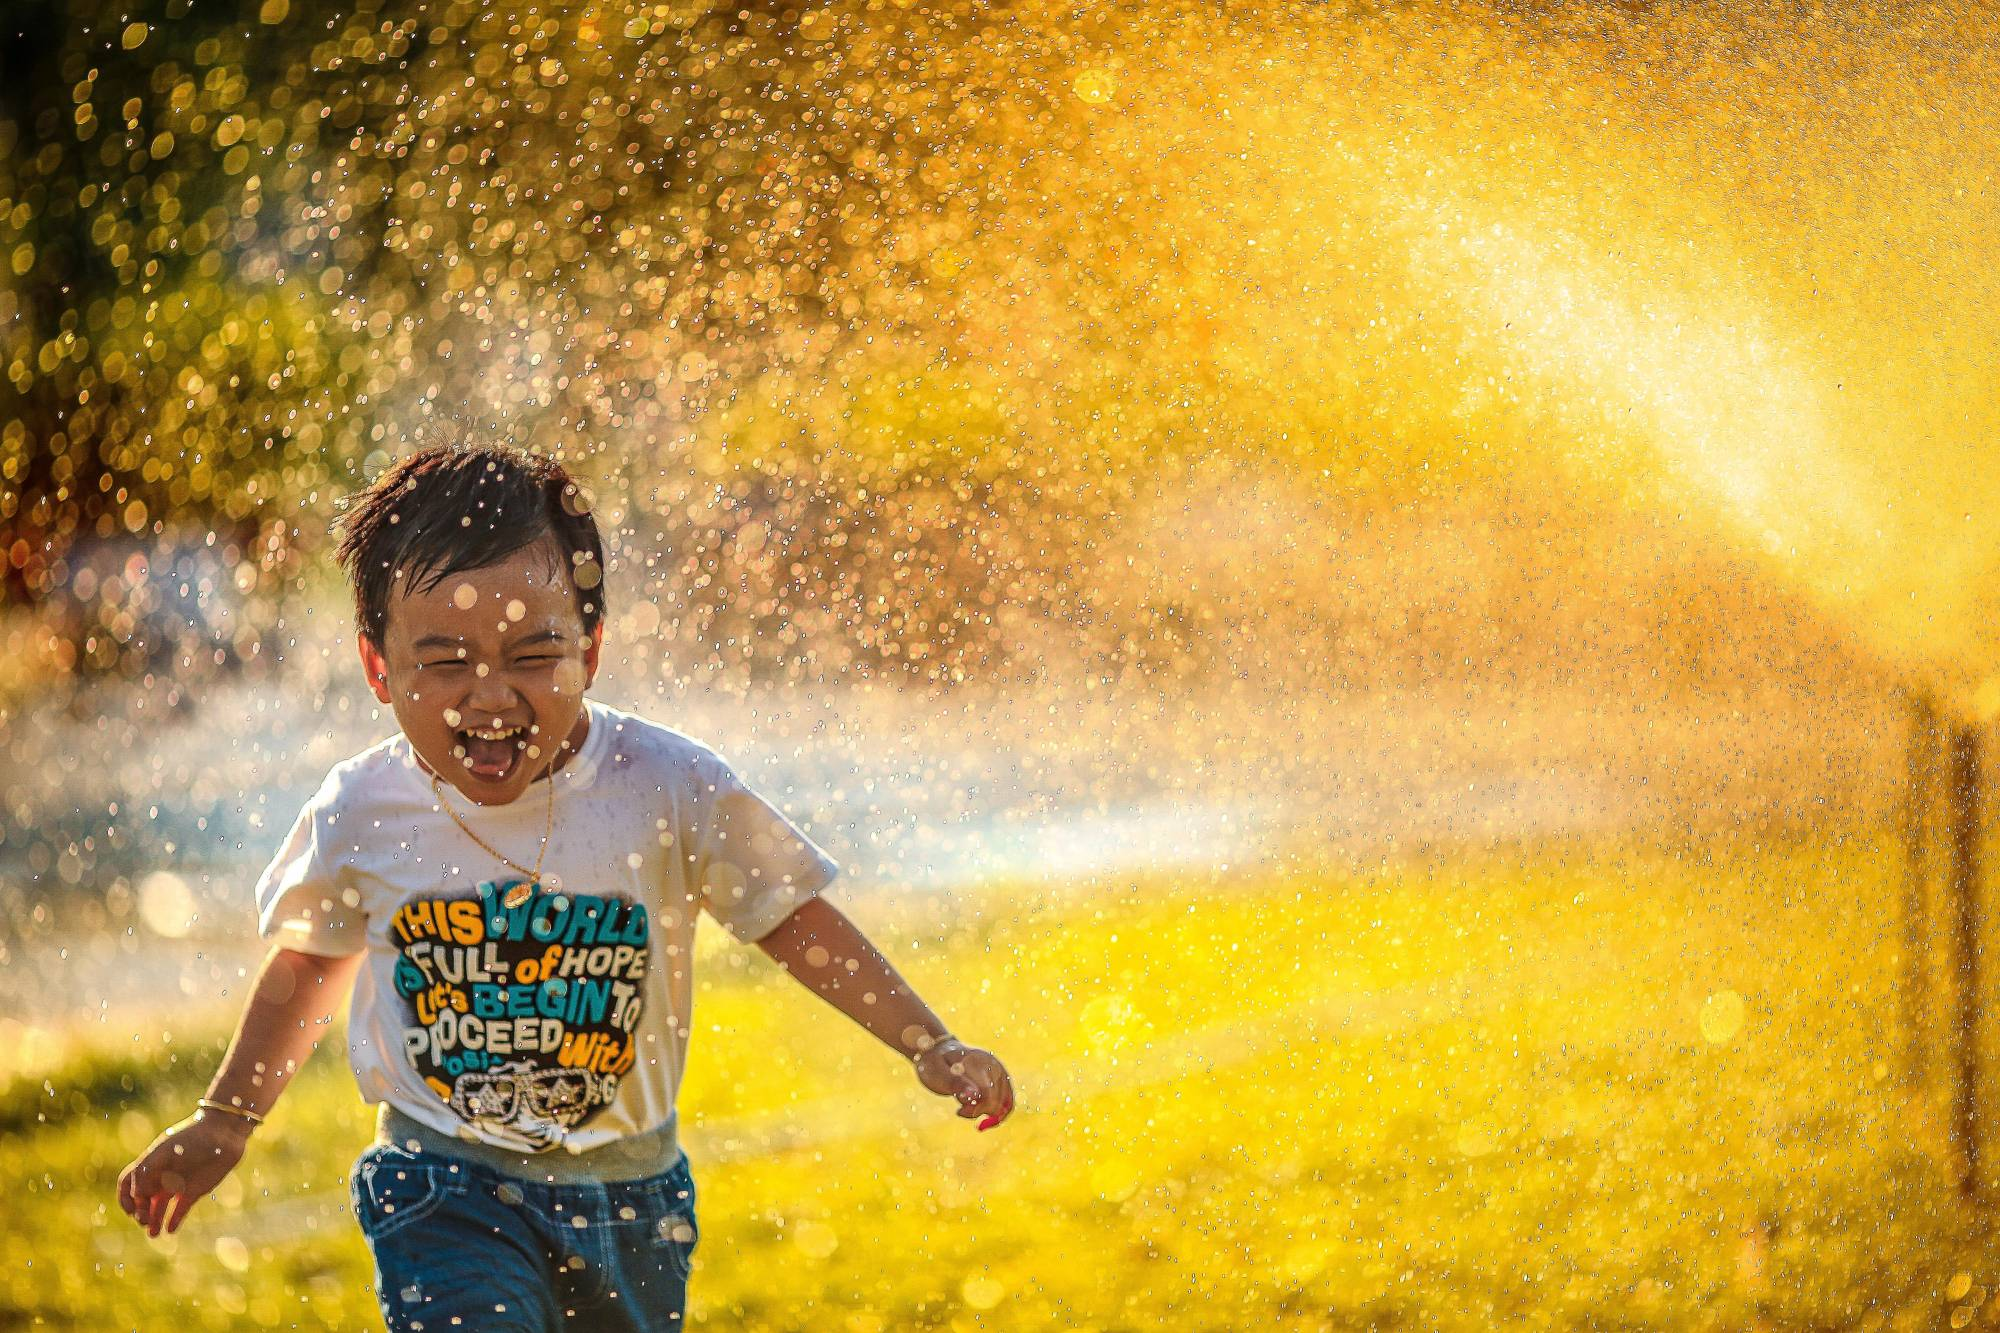 Photo of a small boy running past a water sprinkler